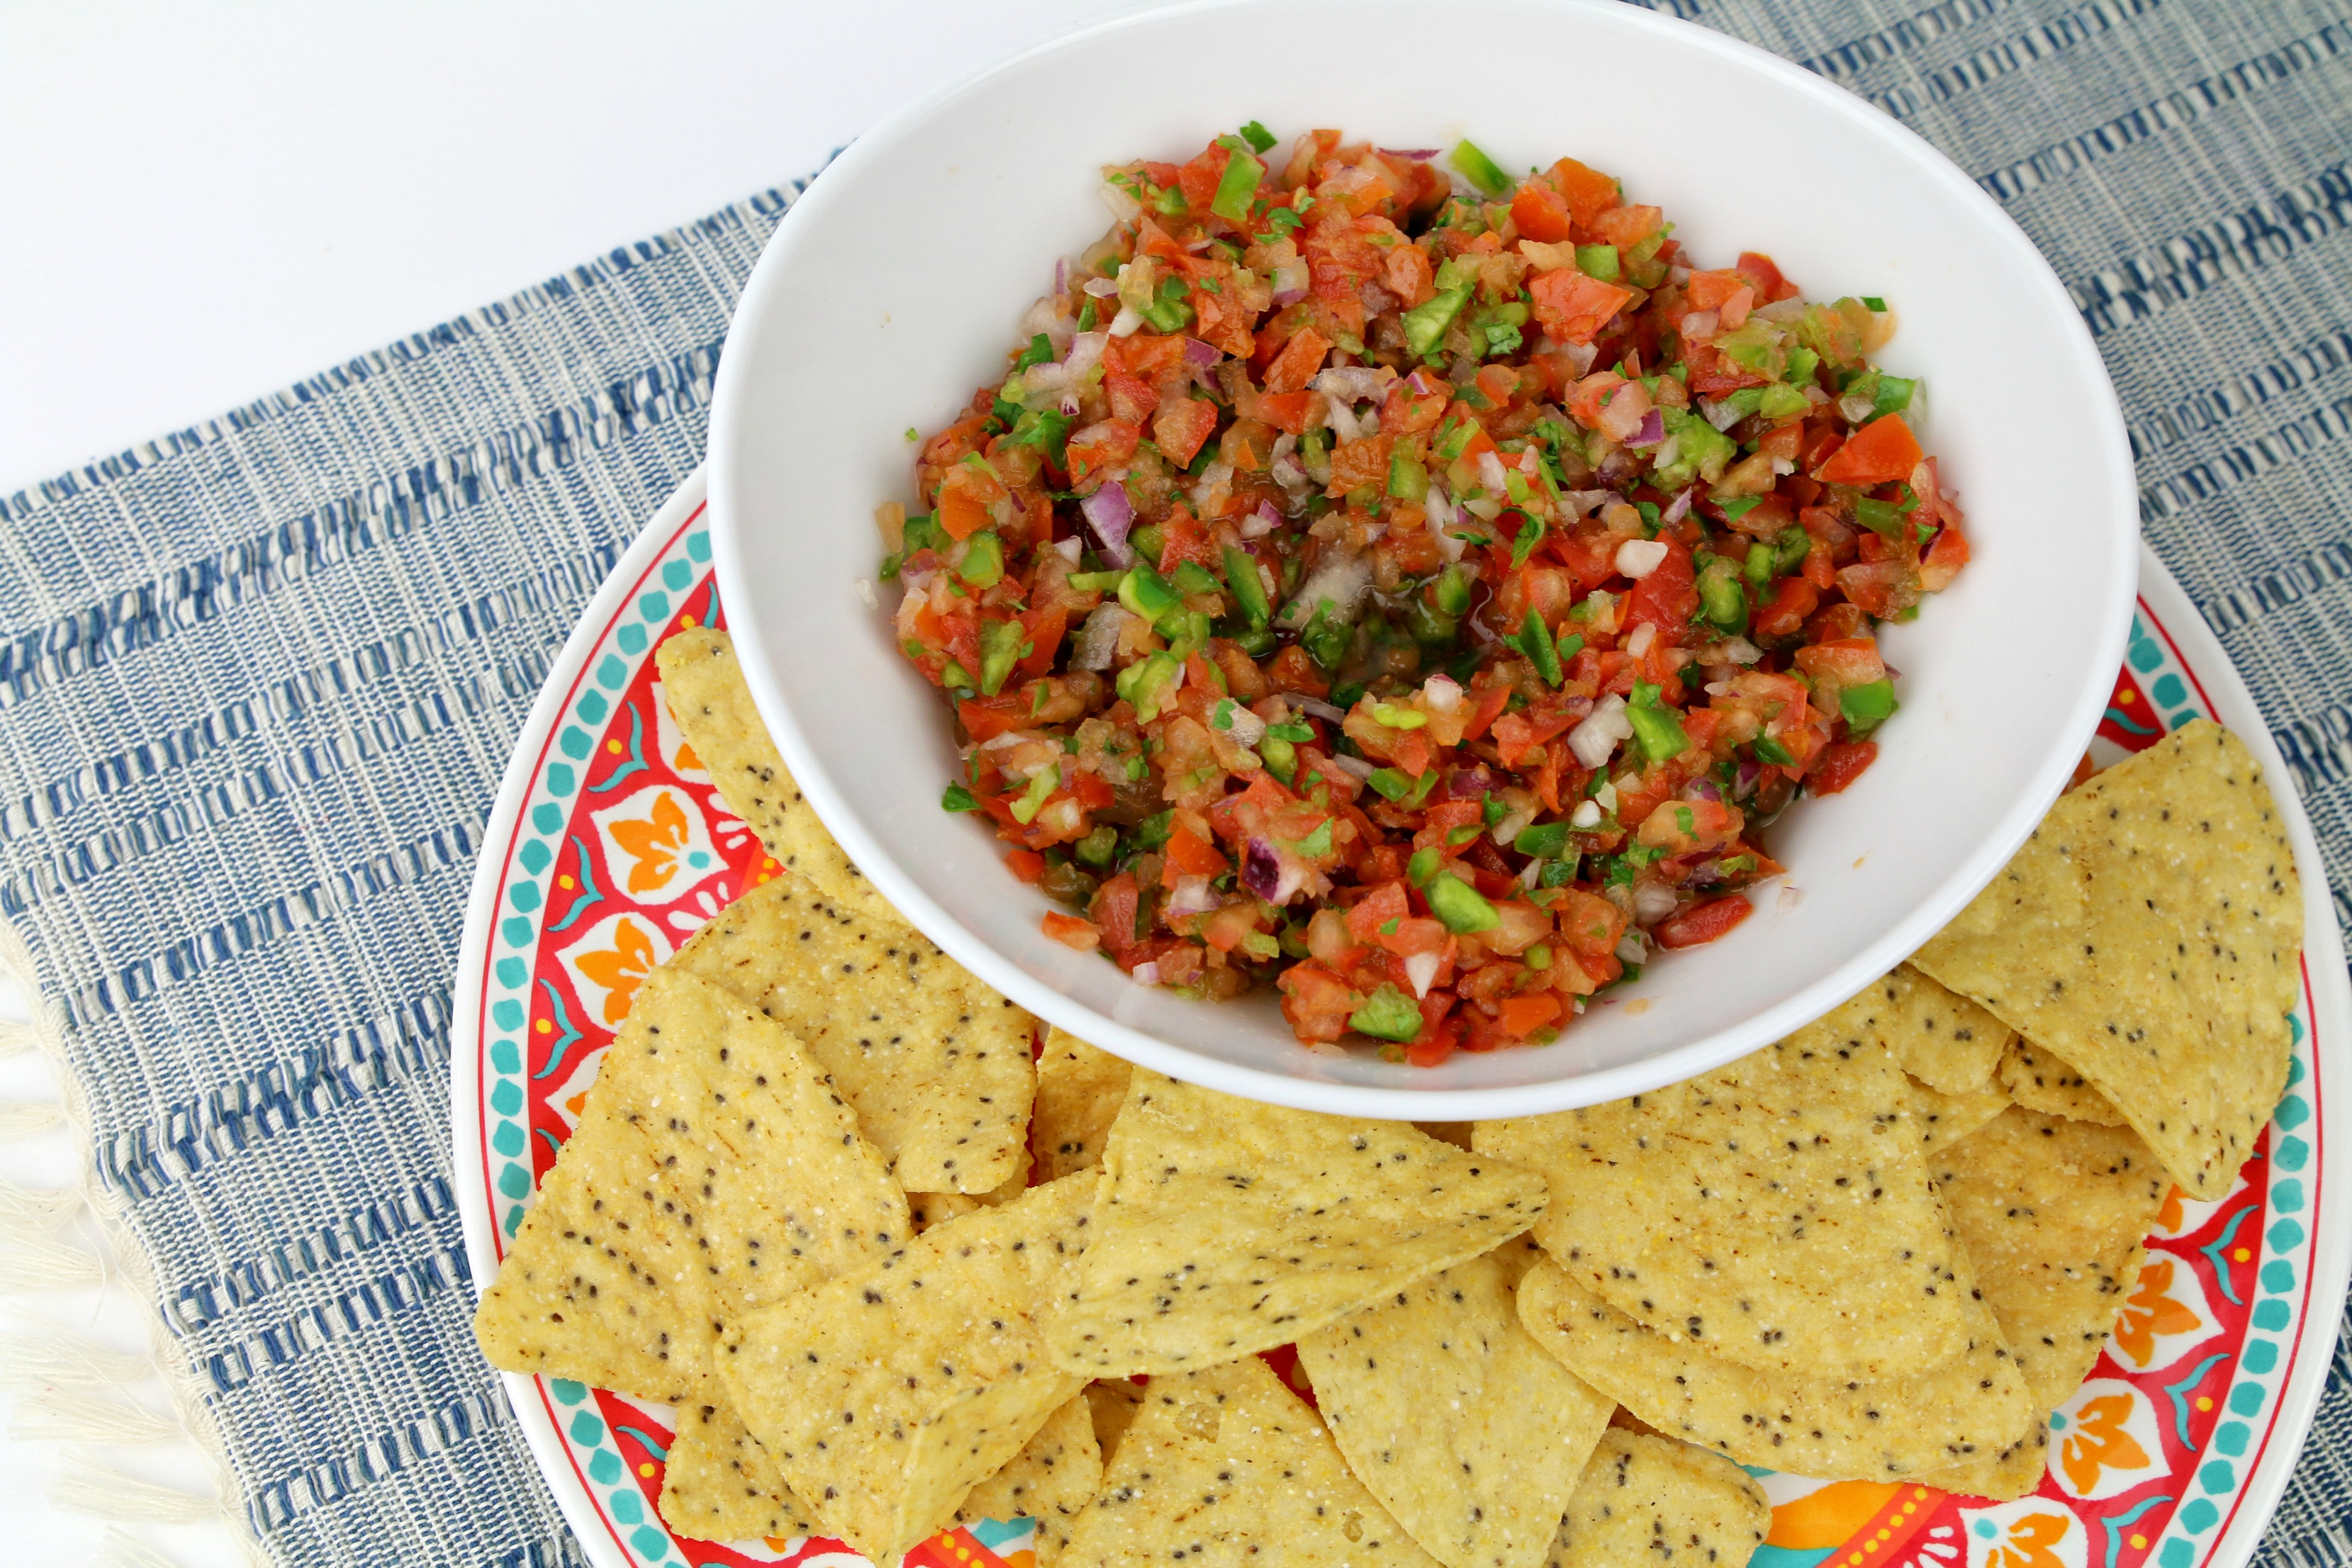 homemade Mexican style pico